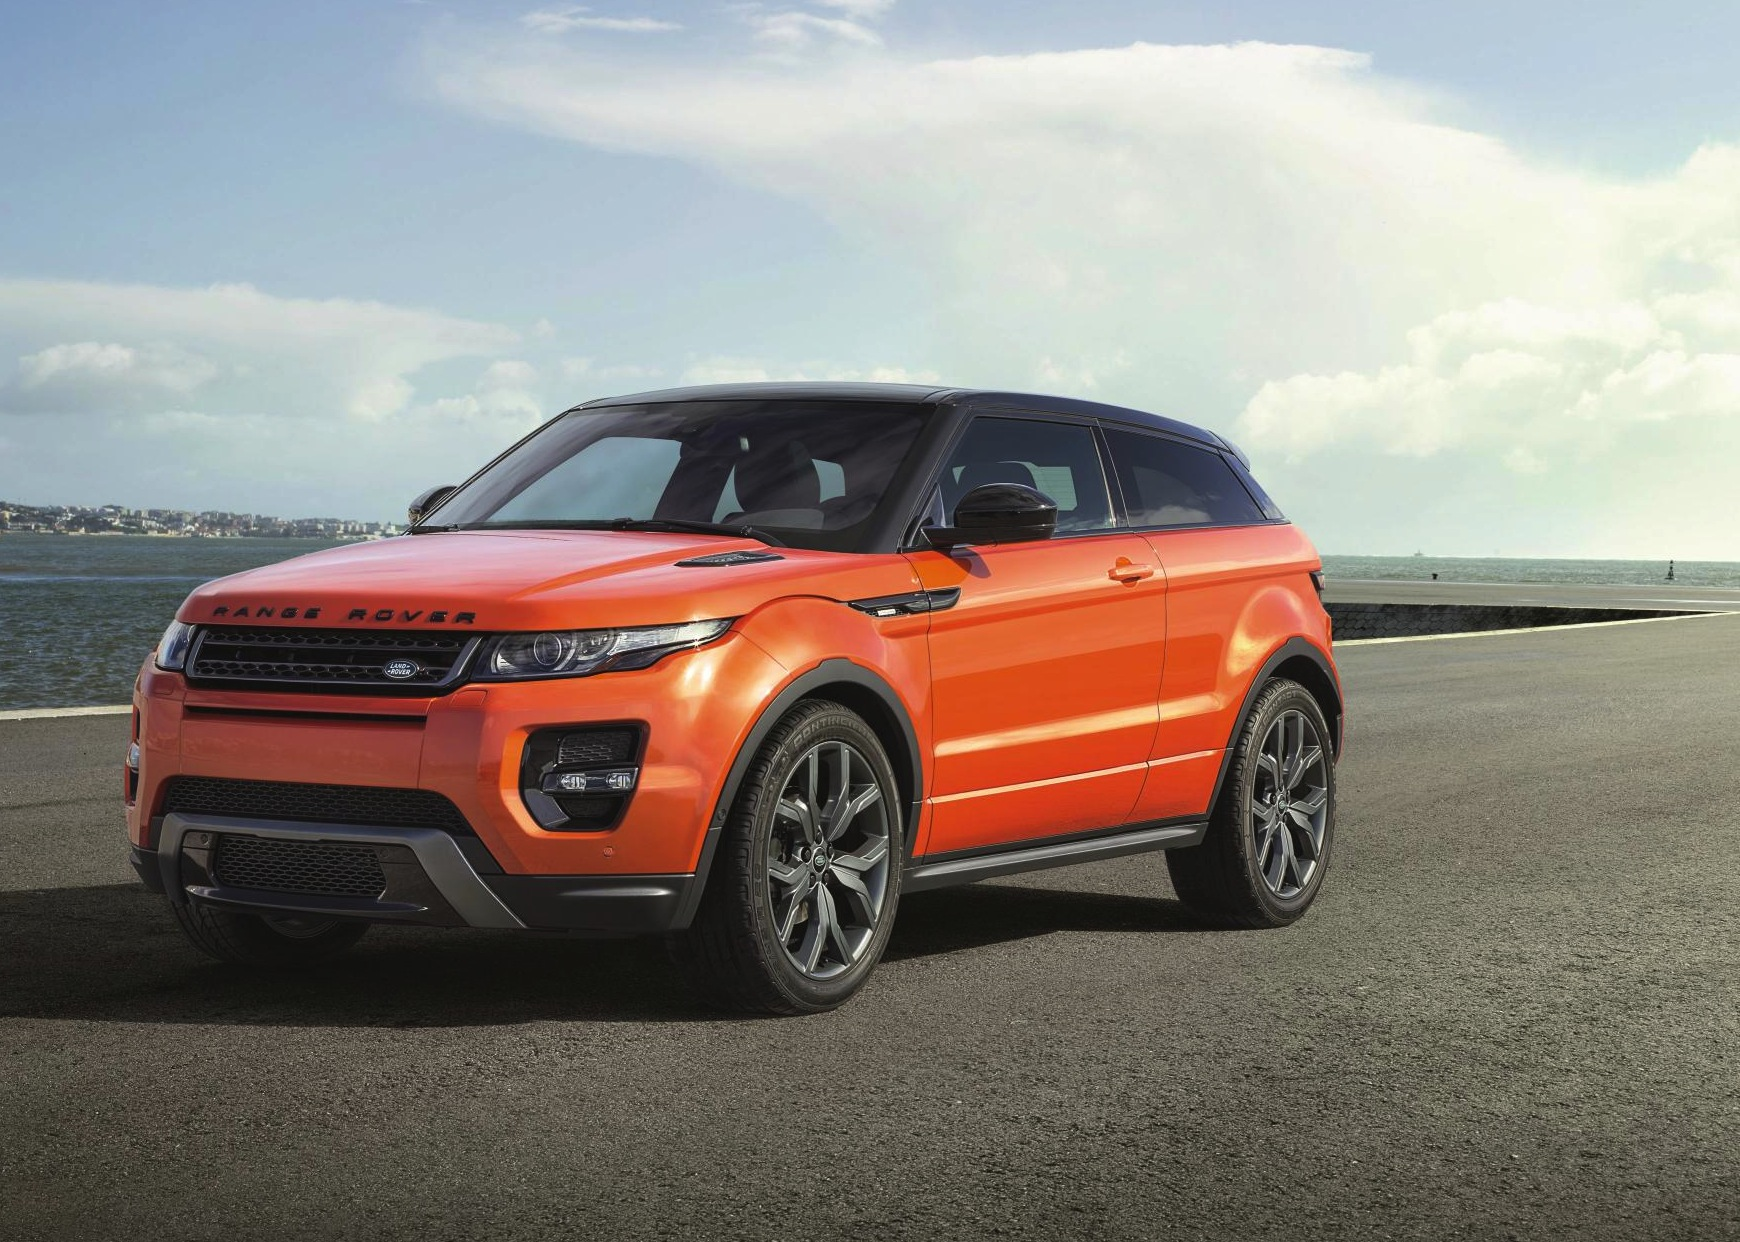 range rover evoque autobiography new performance model. Black Bedroom Furniture Sets. Home Design Ideas